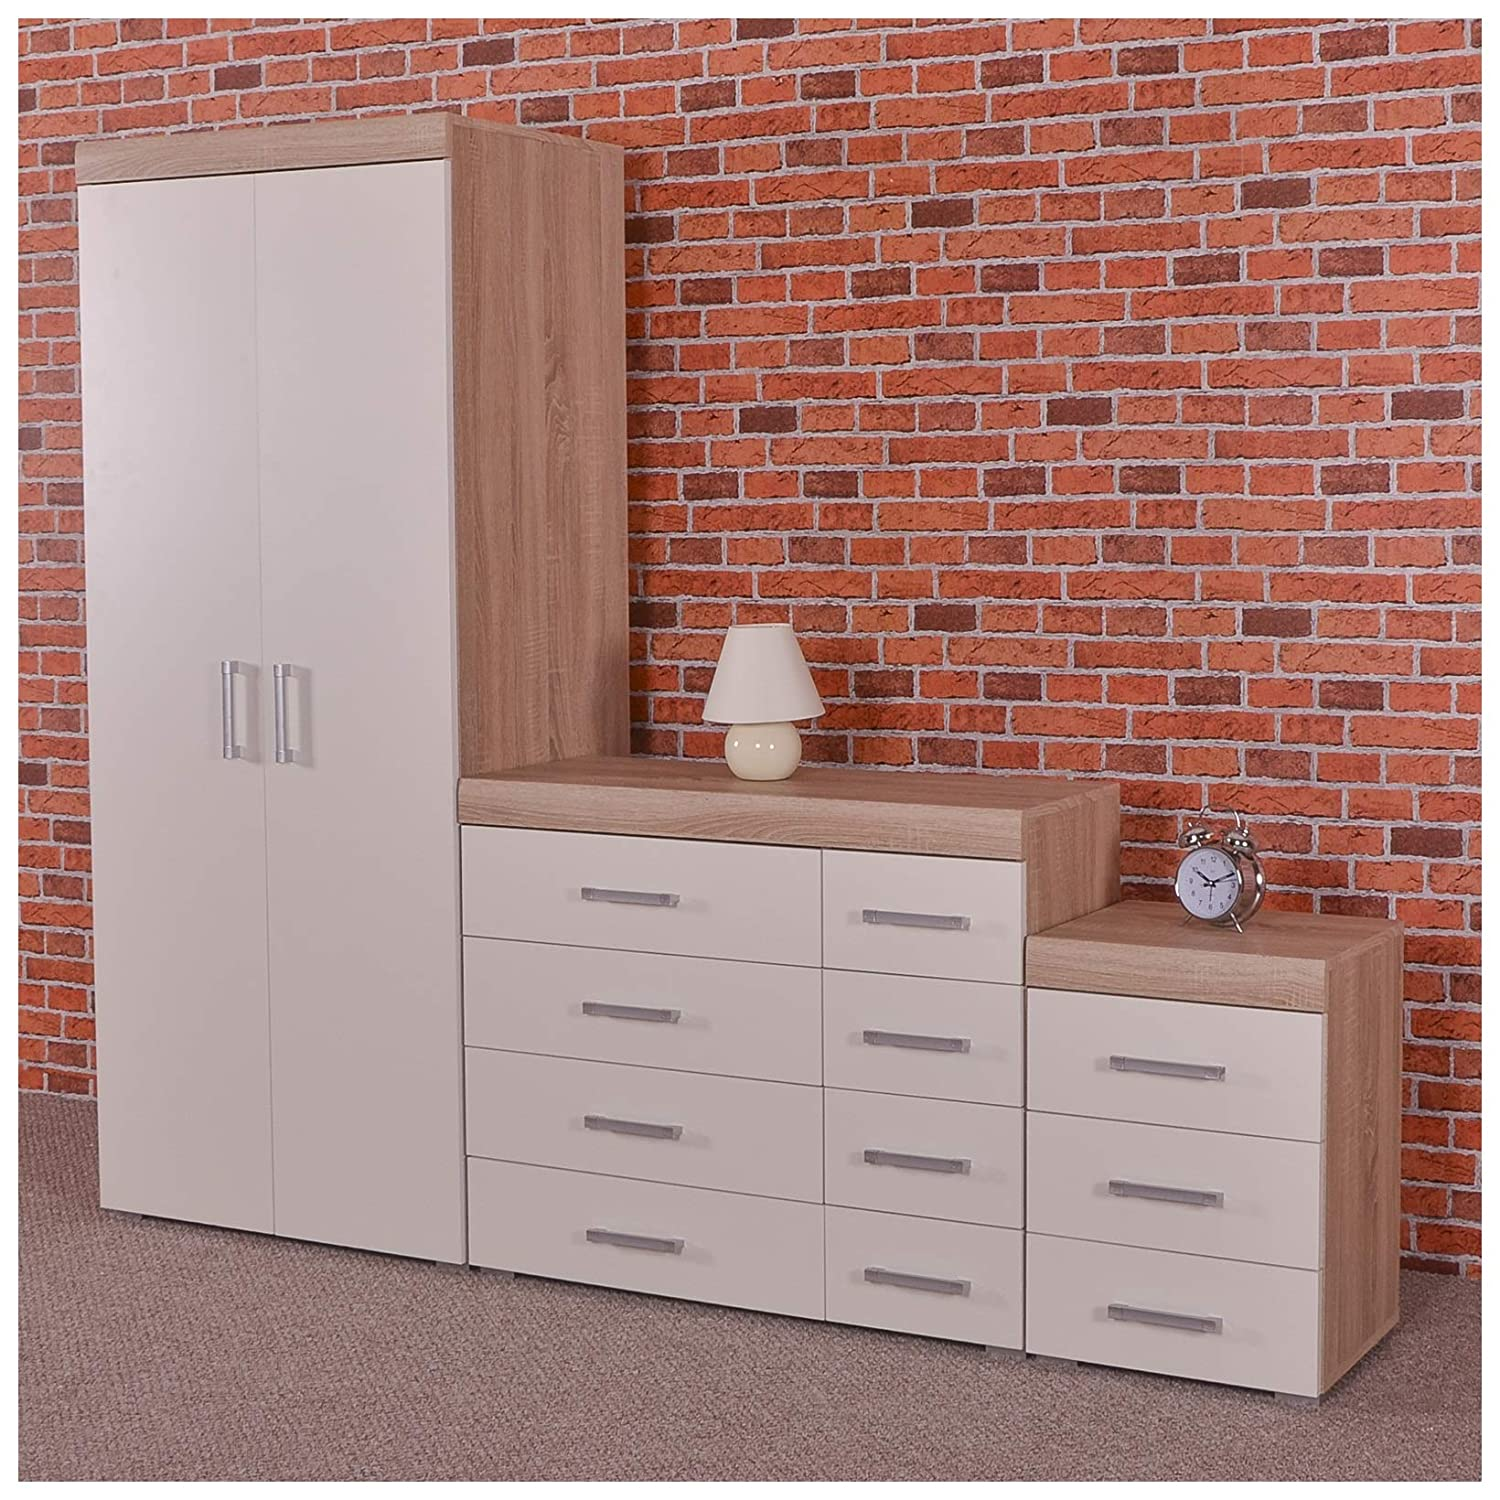 Drp Trading White Sonoma Oak Bedroom Furniture Set Wardrobe 4 Drawer Chest 3 Draw Bedside Table Co Uk Kitchen Home